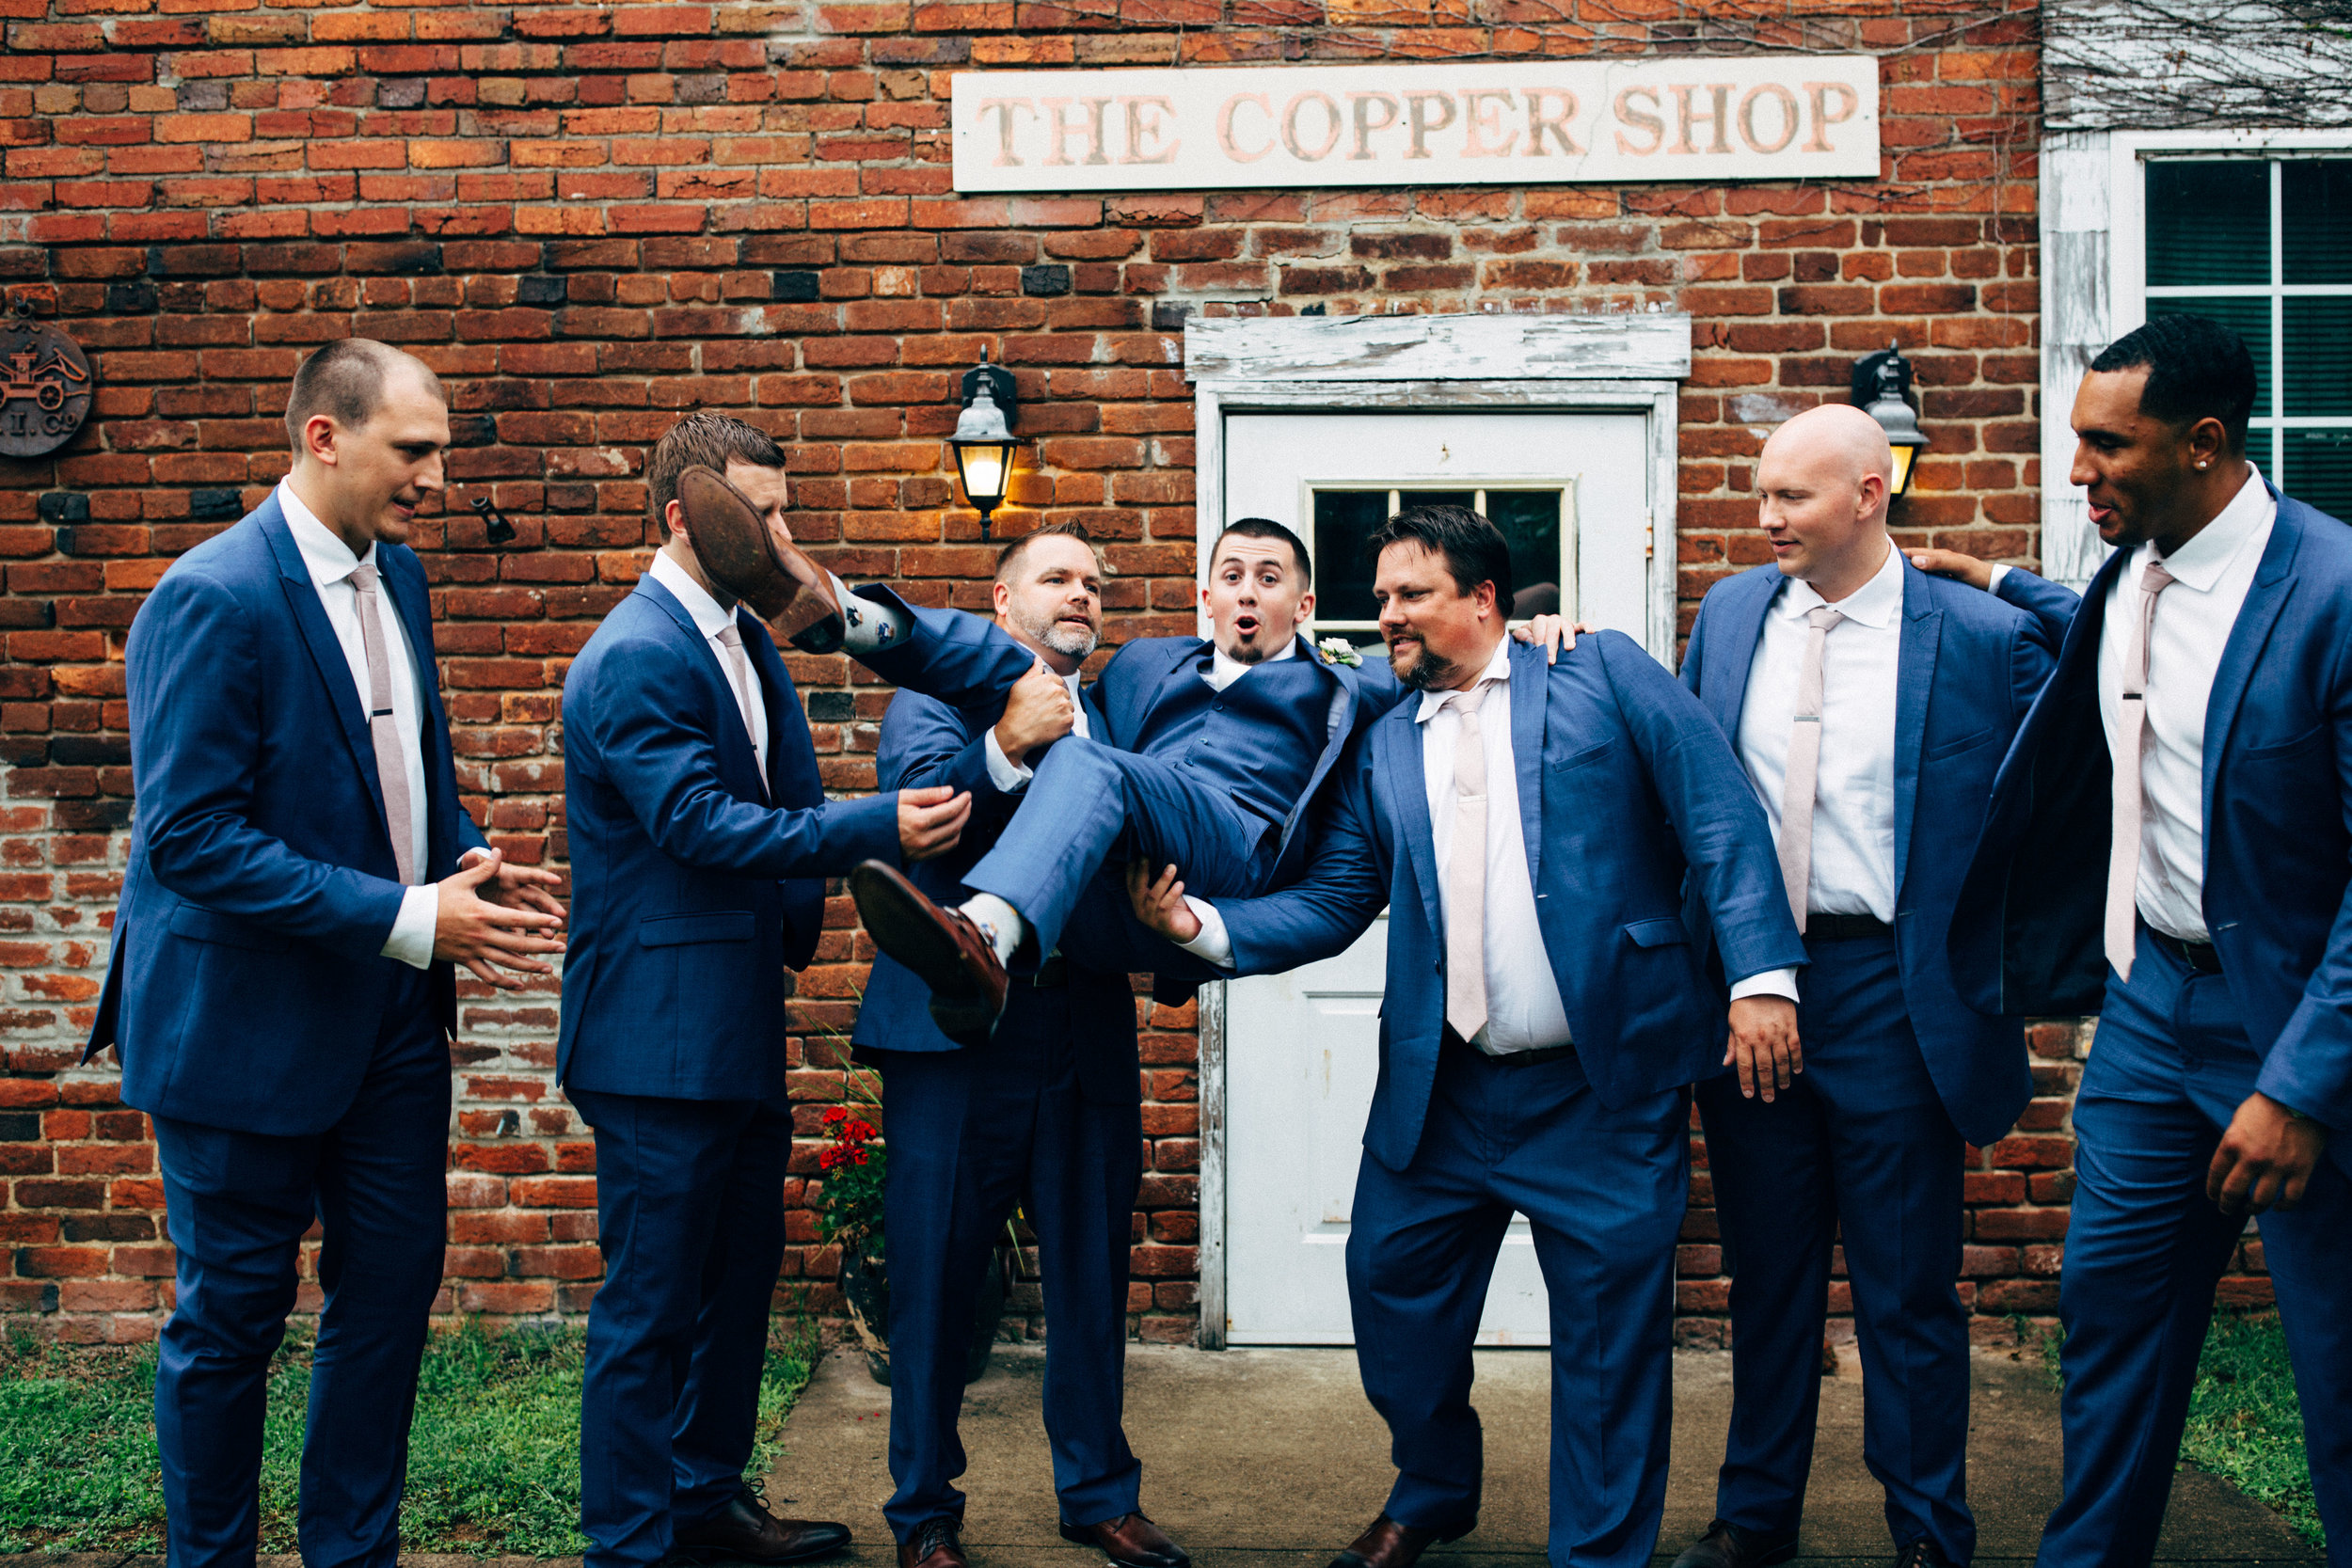 groomsmen lifting up the groom before the wedding ceremony